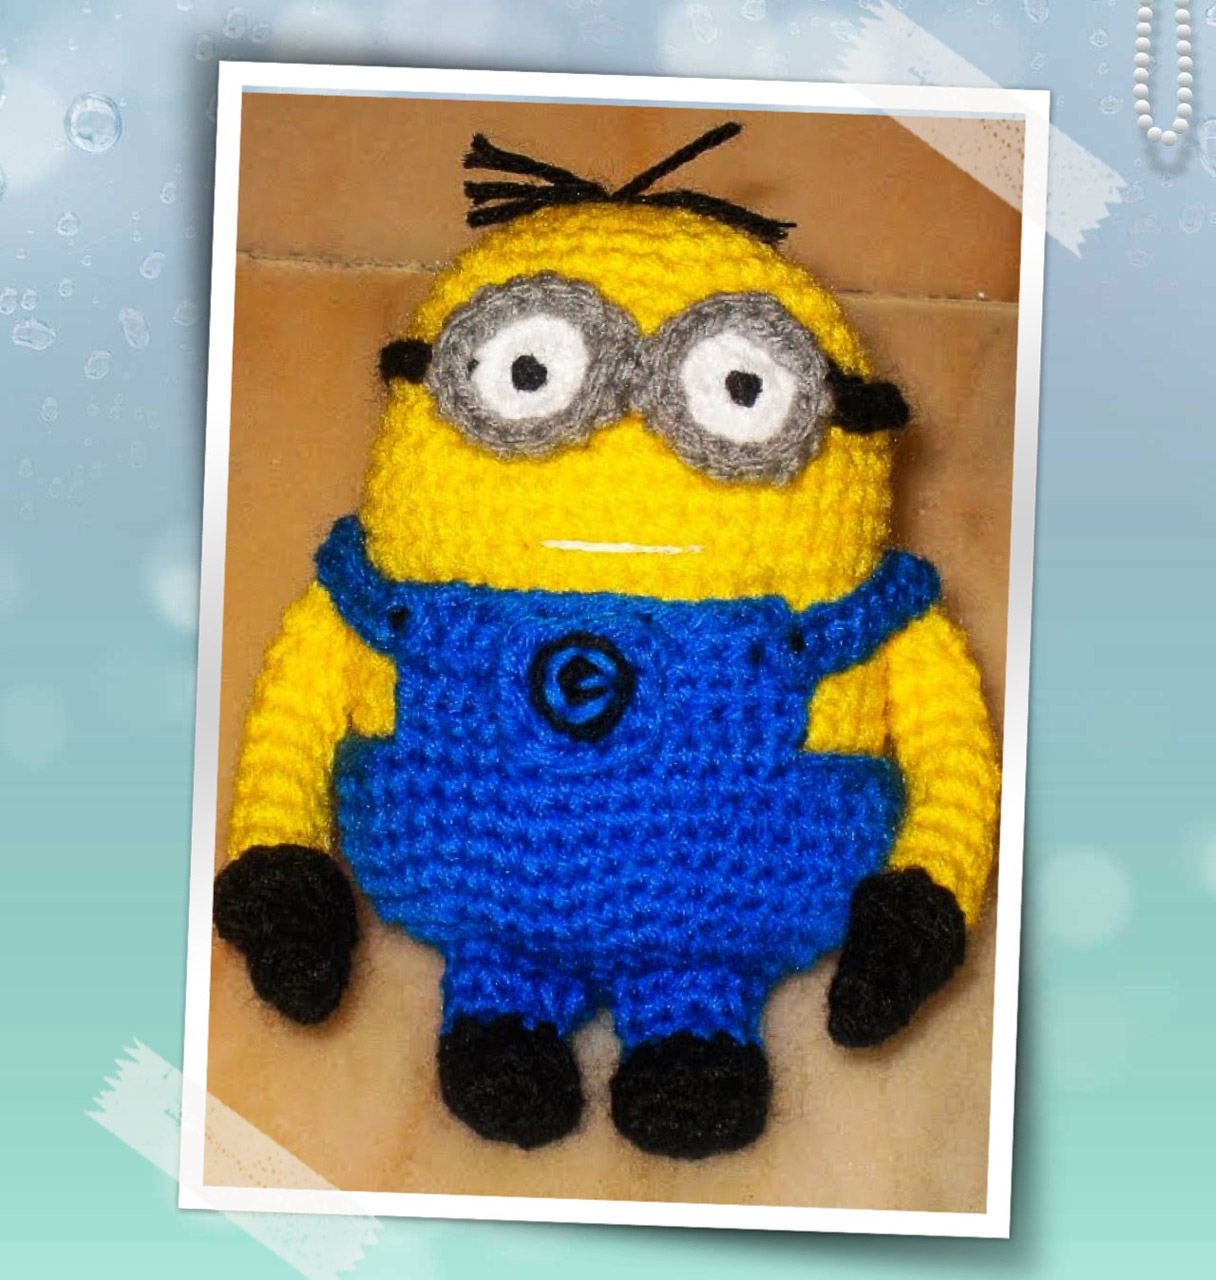 Amigurumi Free Patterns Minions : Despicable Me Minion Amigurumi no.2 ~ Snacksies Handicraft ...